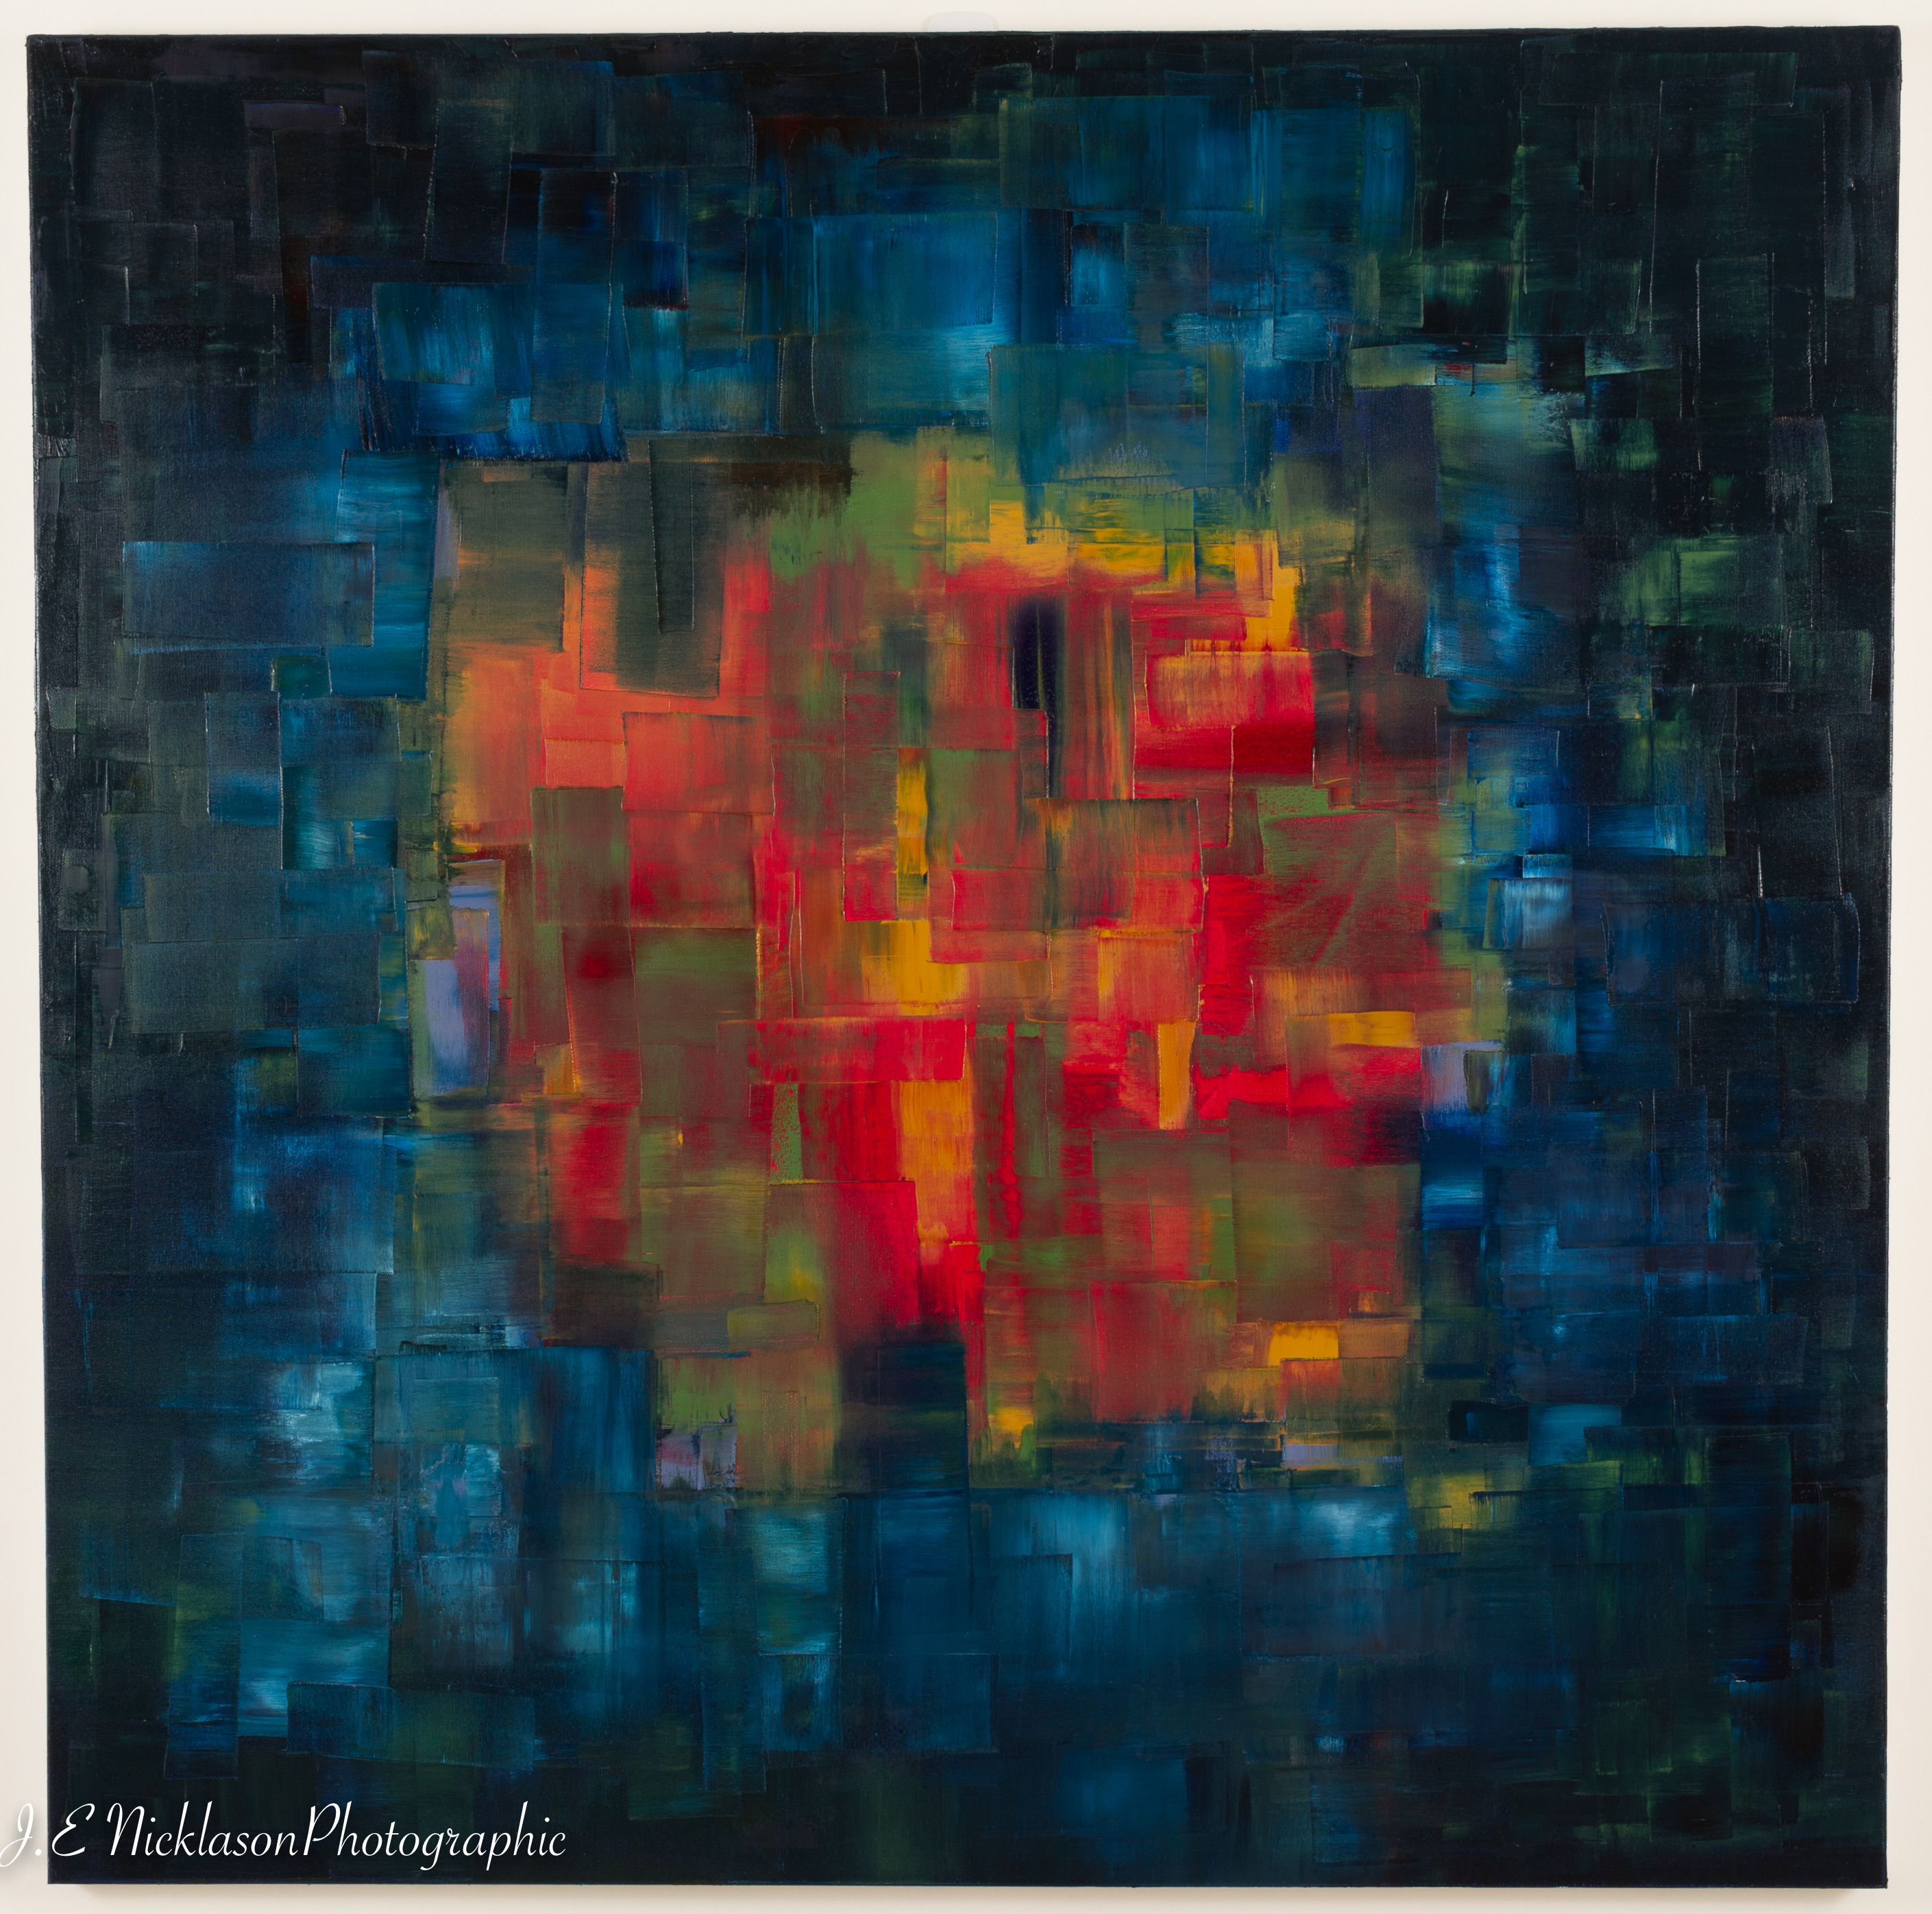 Hole in the Sky artwork by J E Nicklason - art listed for sale on Artplode